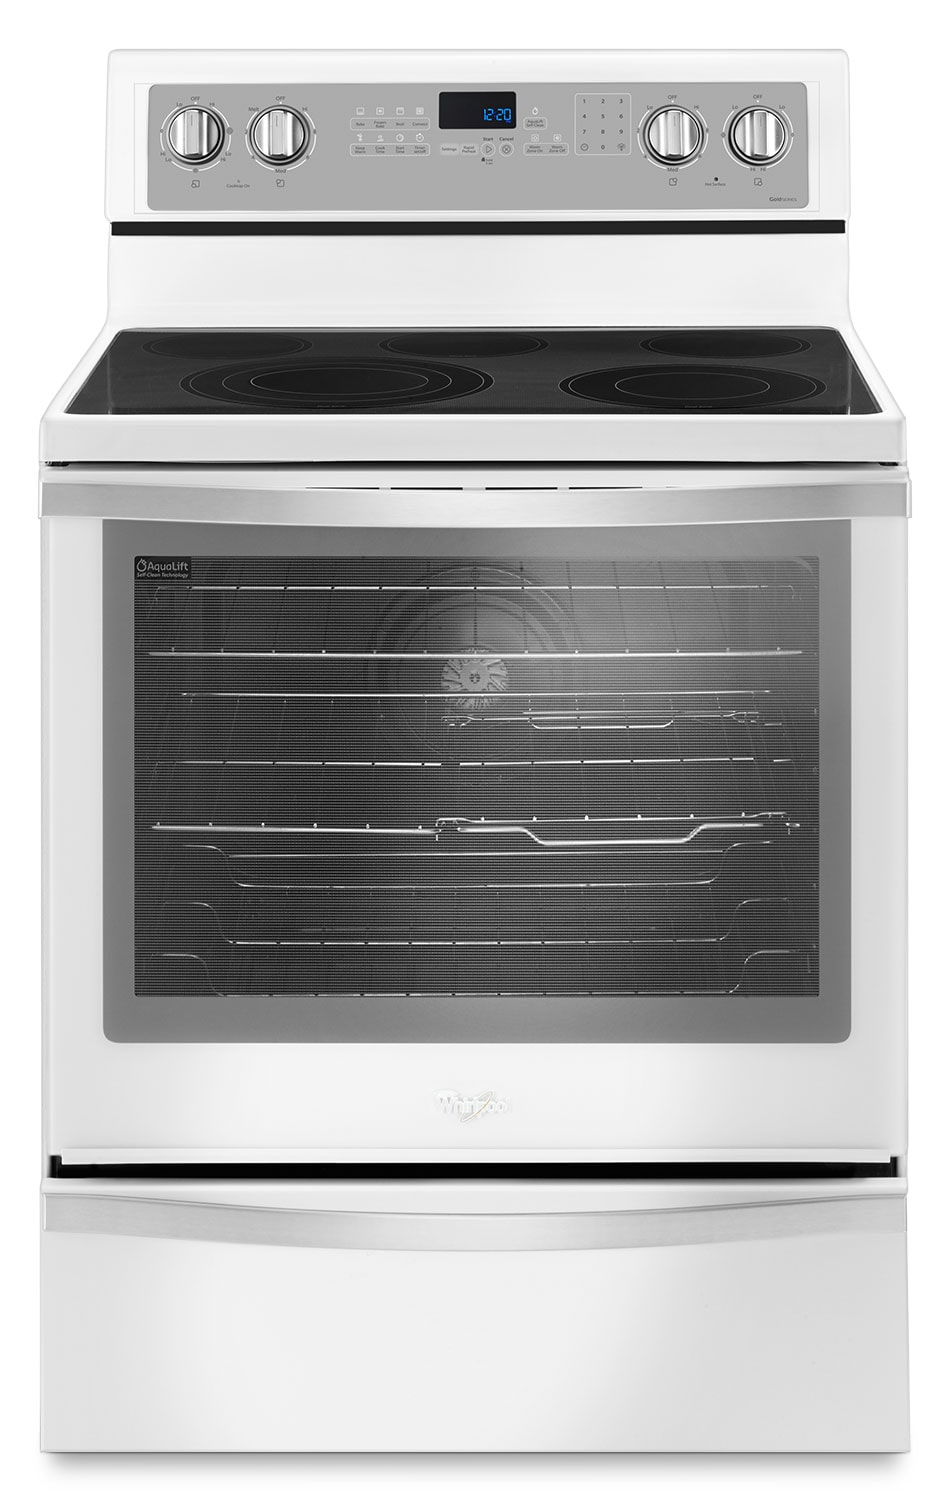 Cooking Products - Whirlpool 6.4 Cu. Ft. Freestanding Electric Range – YWFE745H0FH